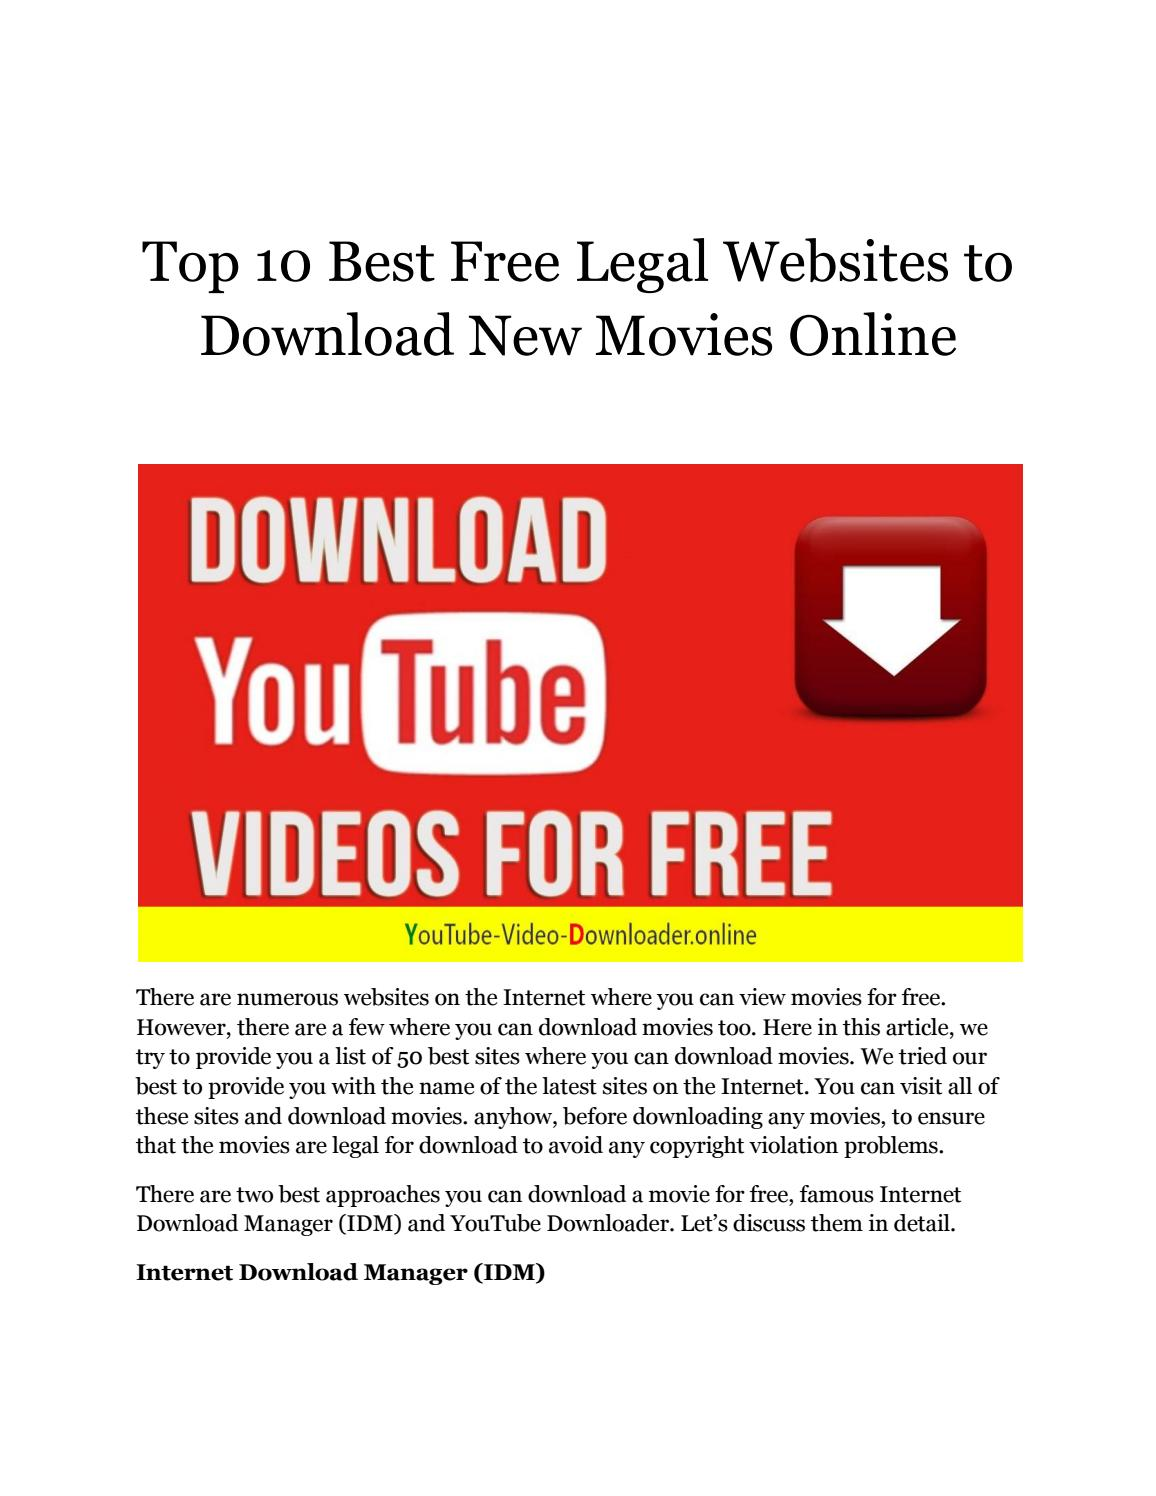 youtube download online legal